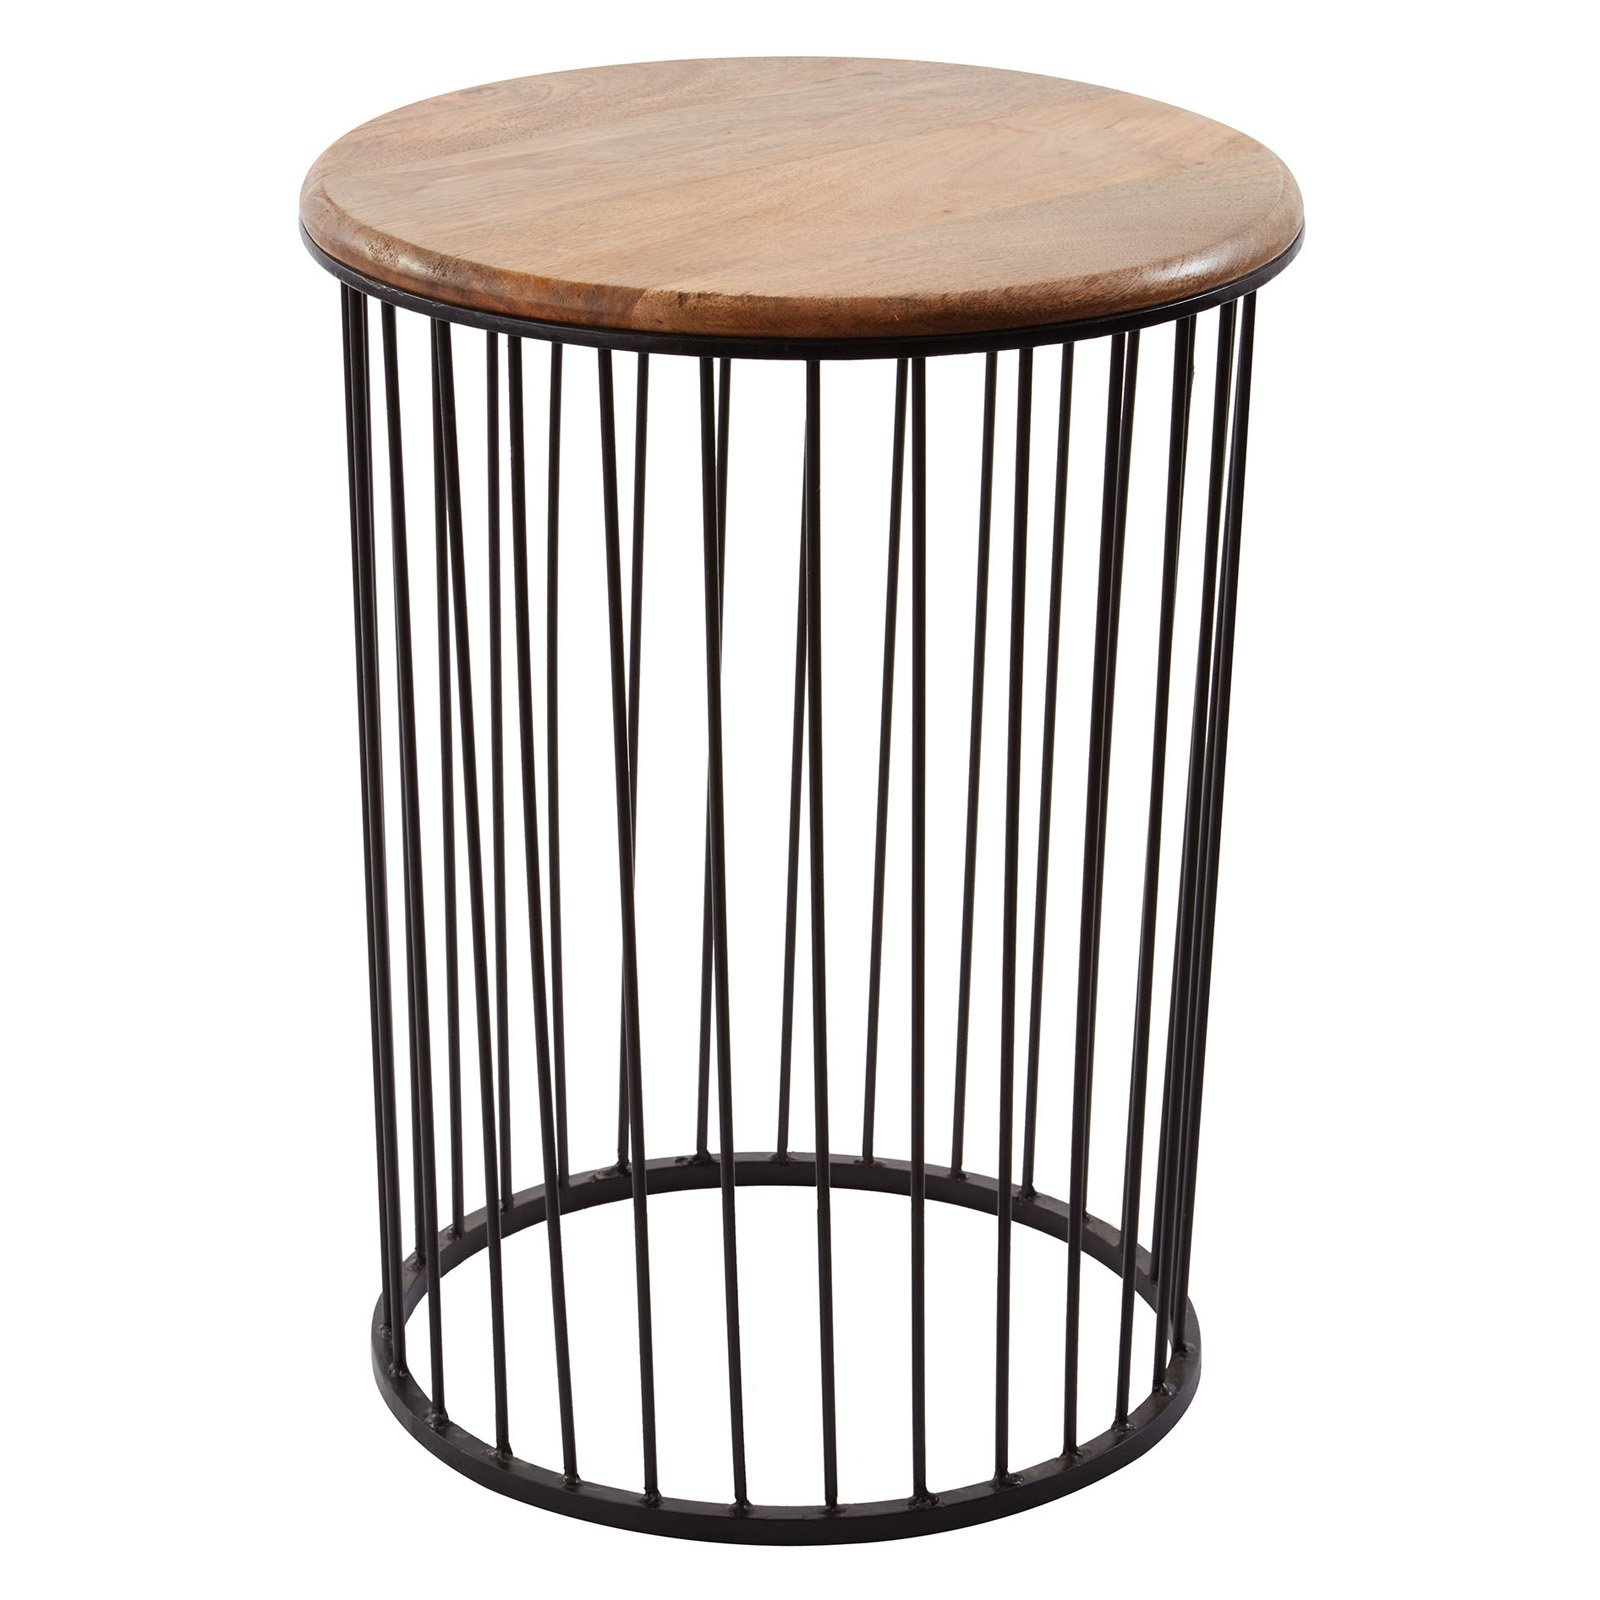 Dimond Home Carousel End Table by Dimond Home